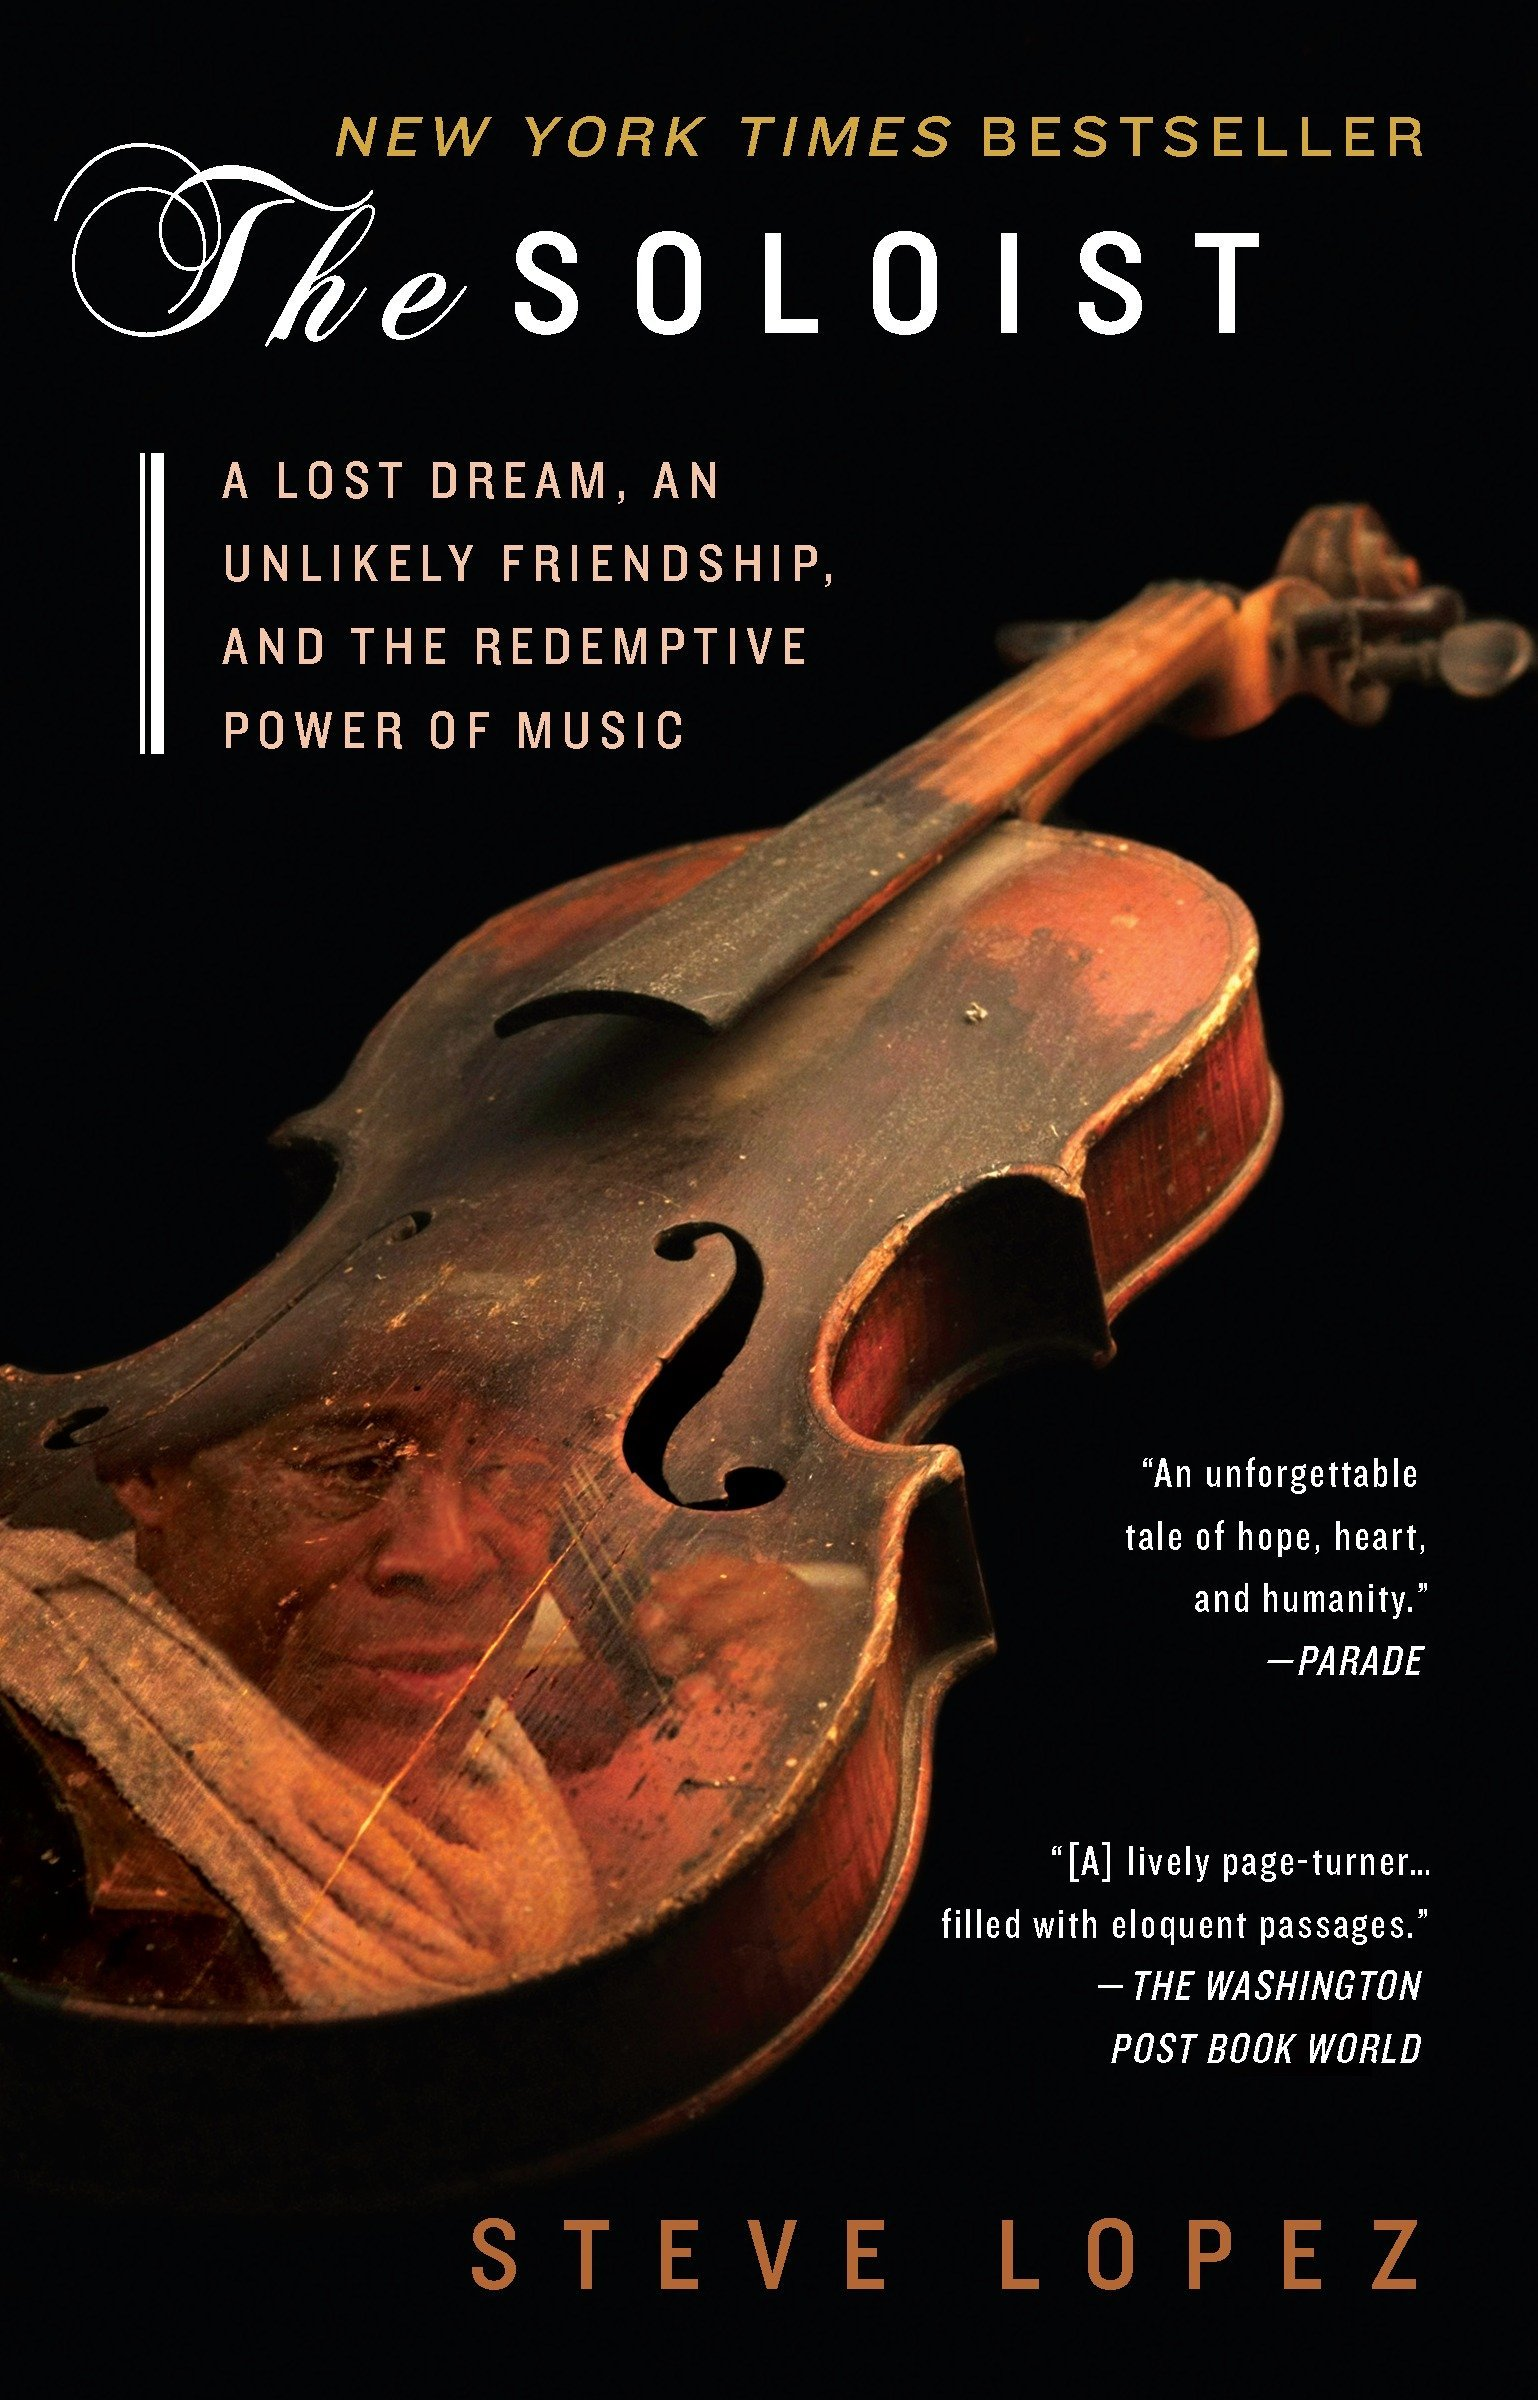 The soloist a lost dream an unlikely friendship and the the soloist a lost dream an unlikely friendship and the redemptive power of music steve lopez 9780425238363 amazon books fandeluxe Gallery